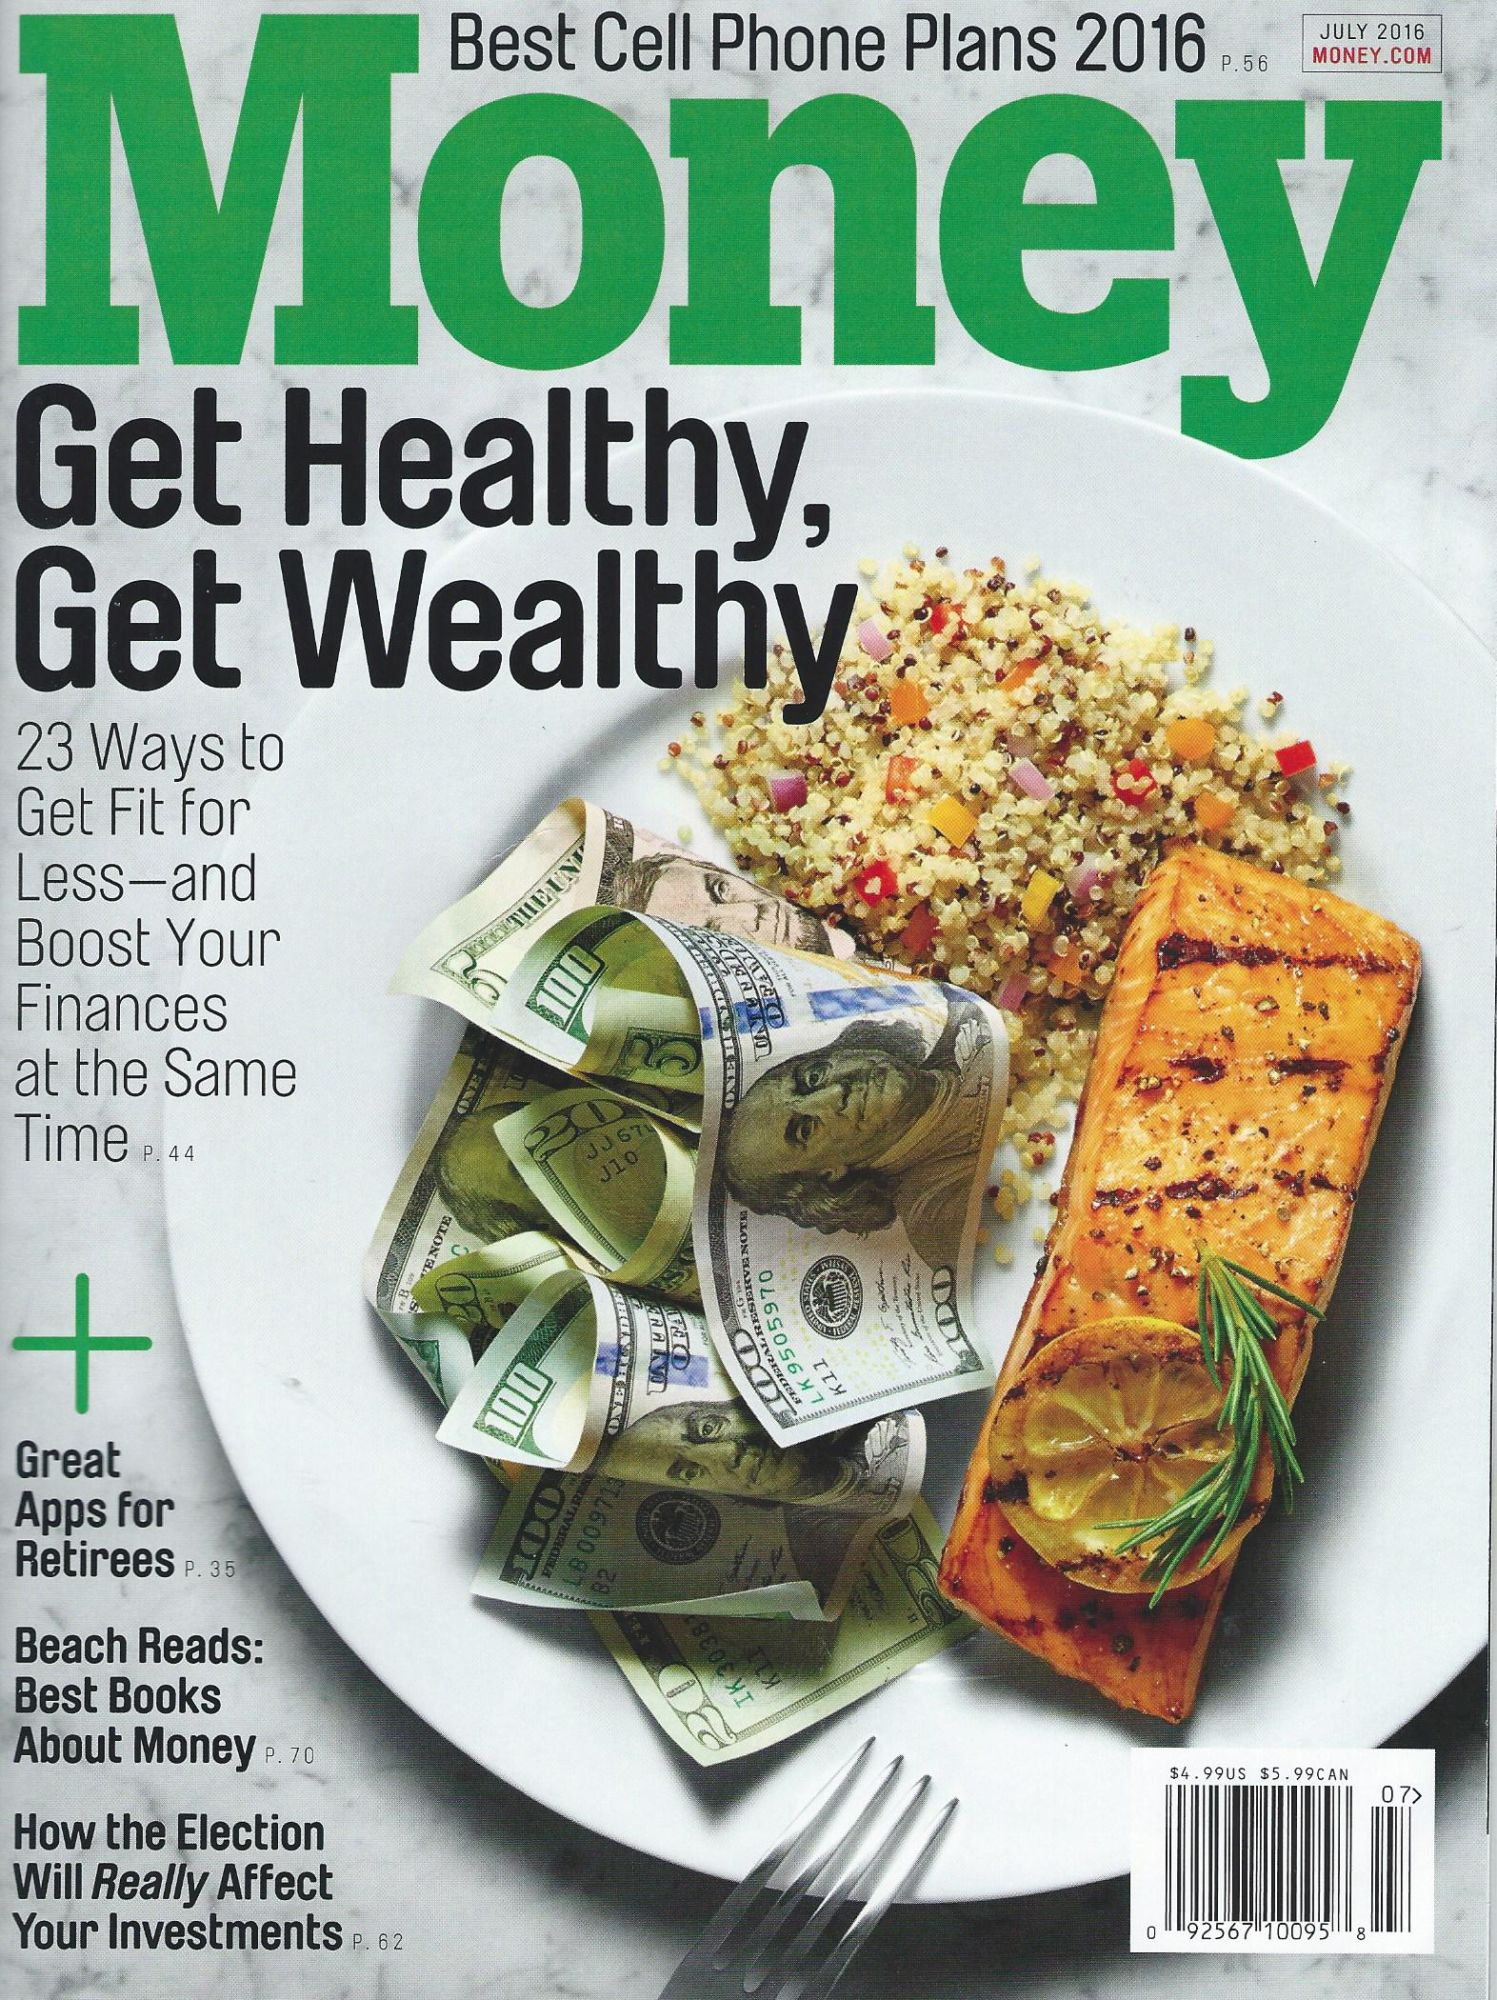 Fashion Flash on money and health